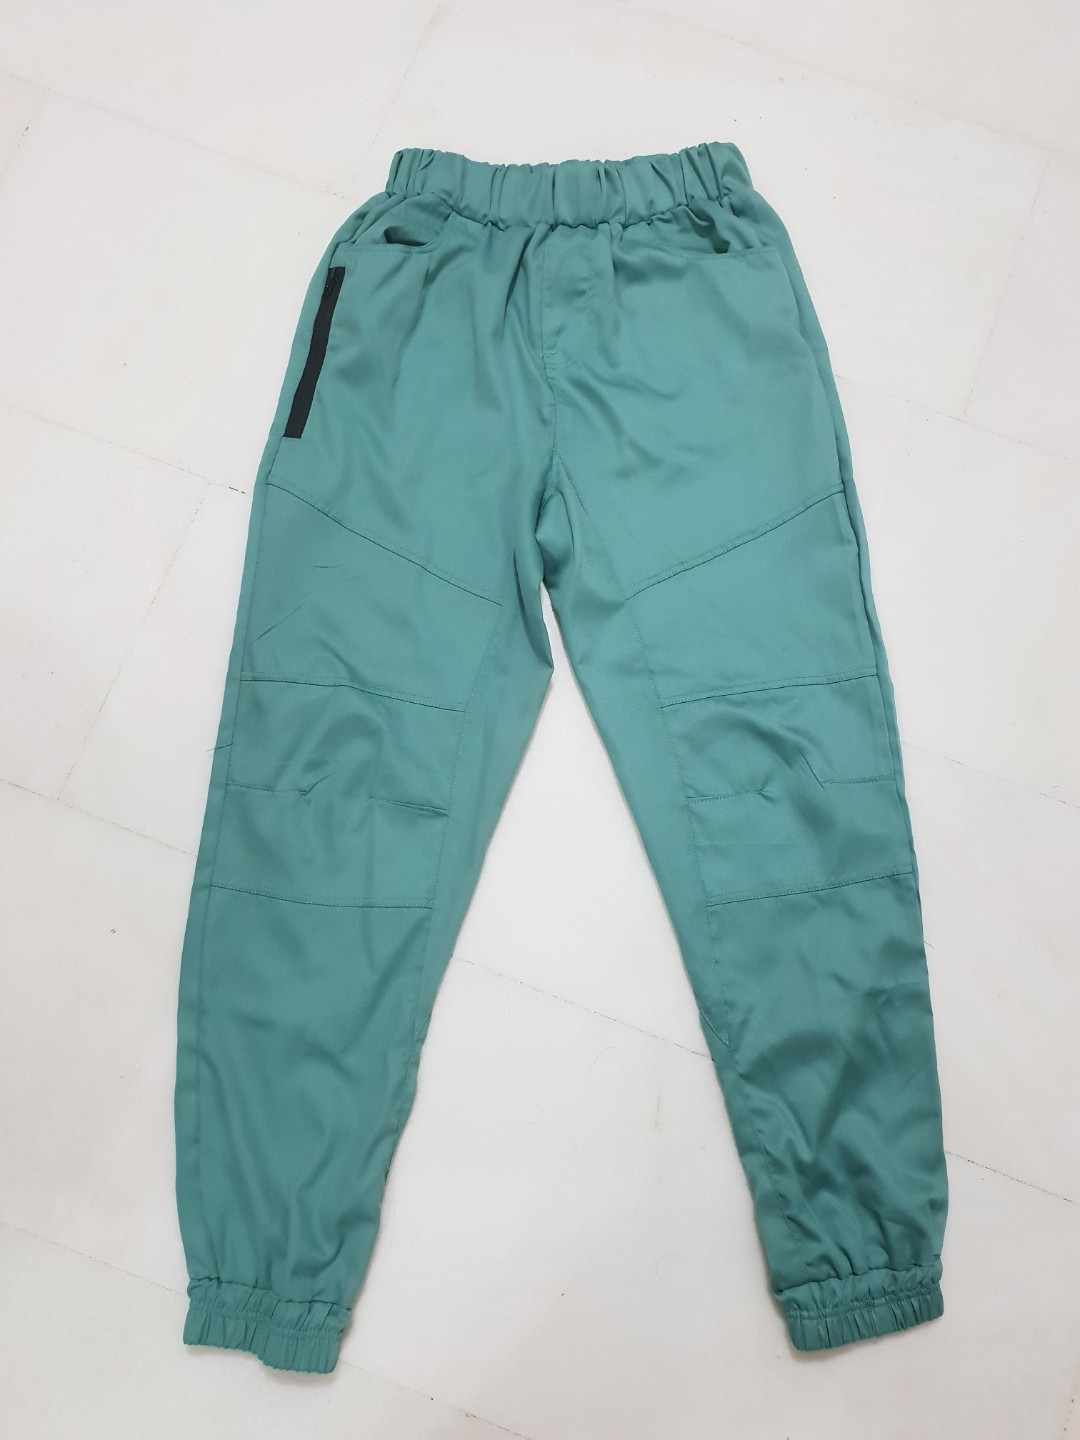 d7126e6a79 Unisex jogger carrot pants, Men's Fashion, Clothes, Bottoms on Carousell